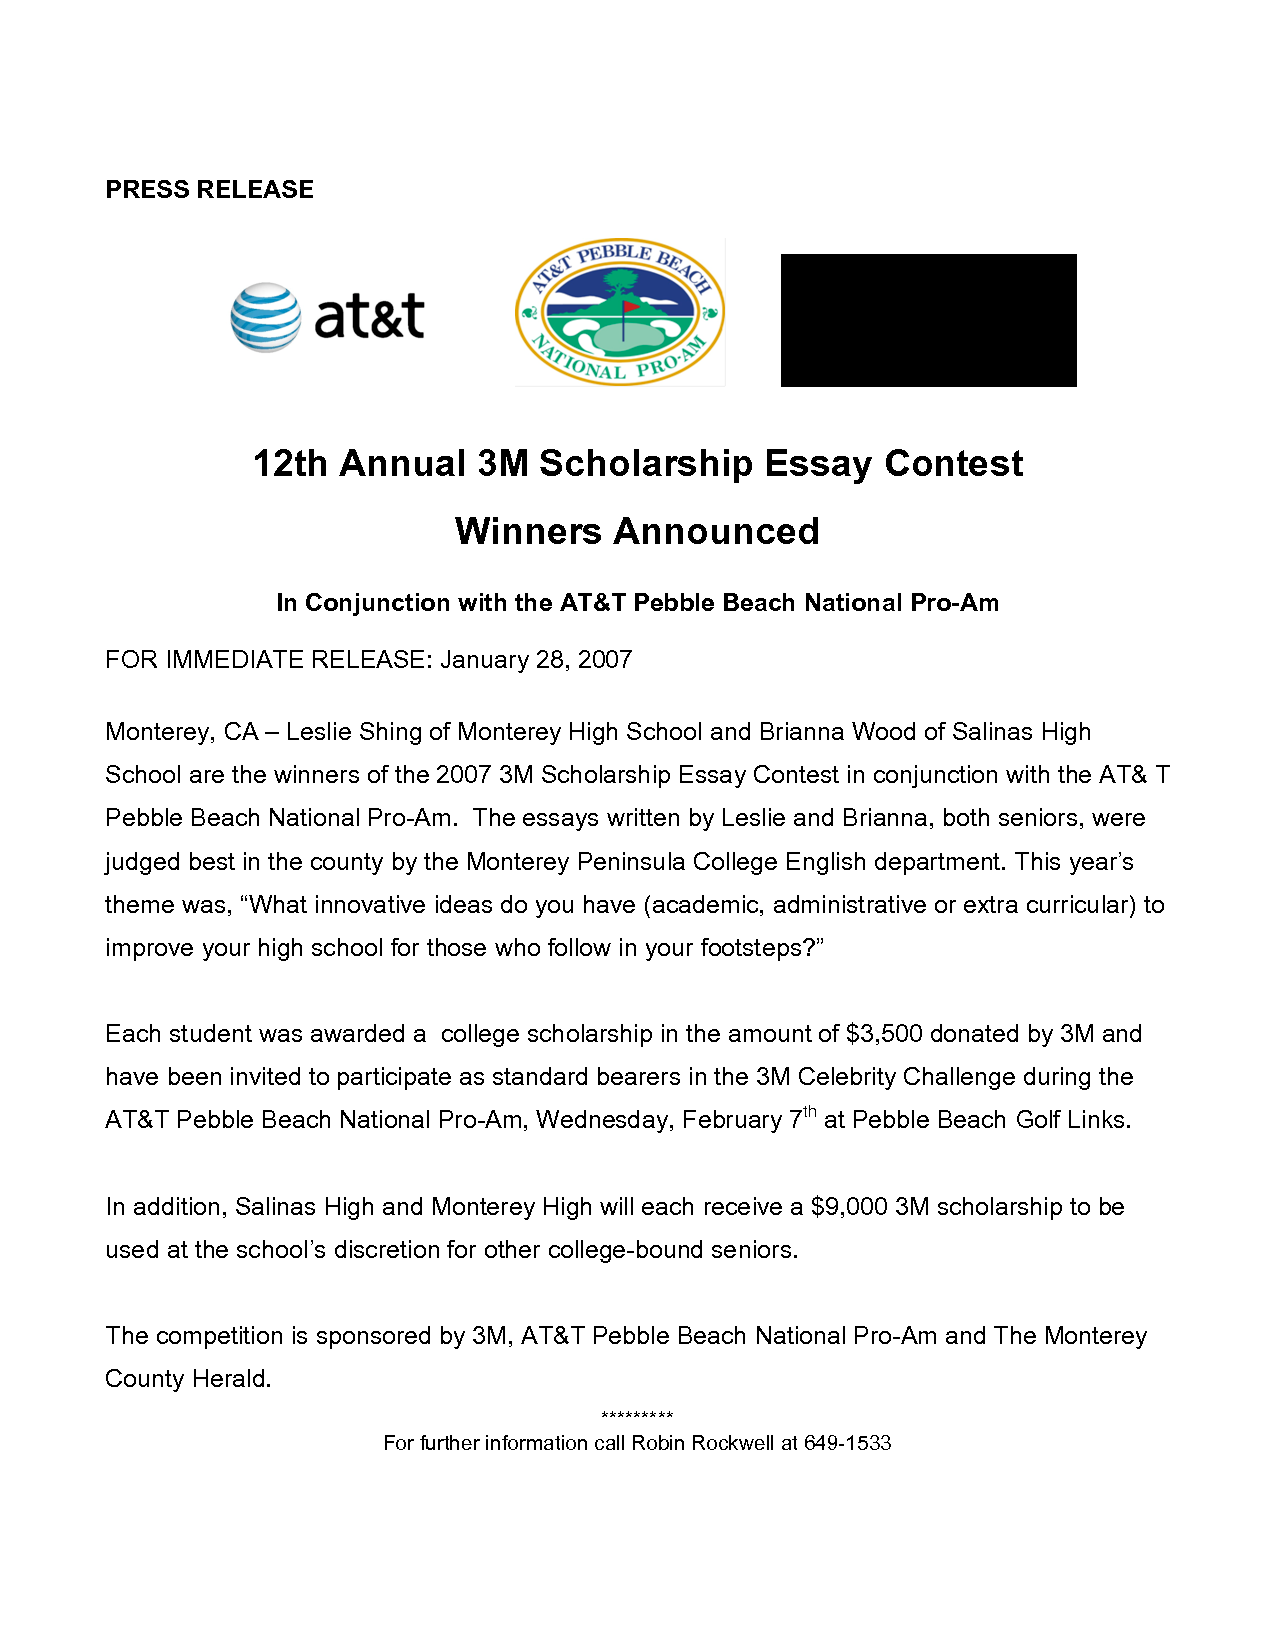 002 Essay Scholarships For High School Students Example Scholarship Application Help Contests Juniors 3 No Incredible Free Writing Class Of 2020 Full